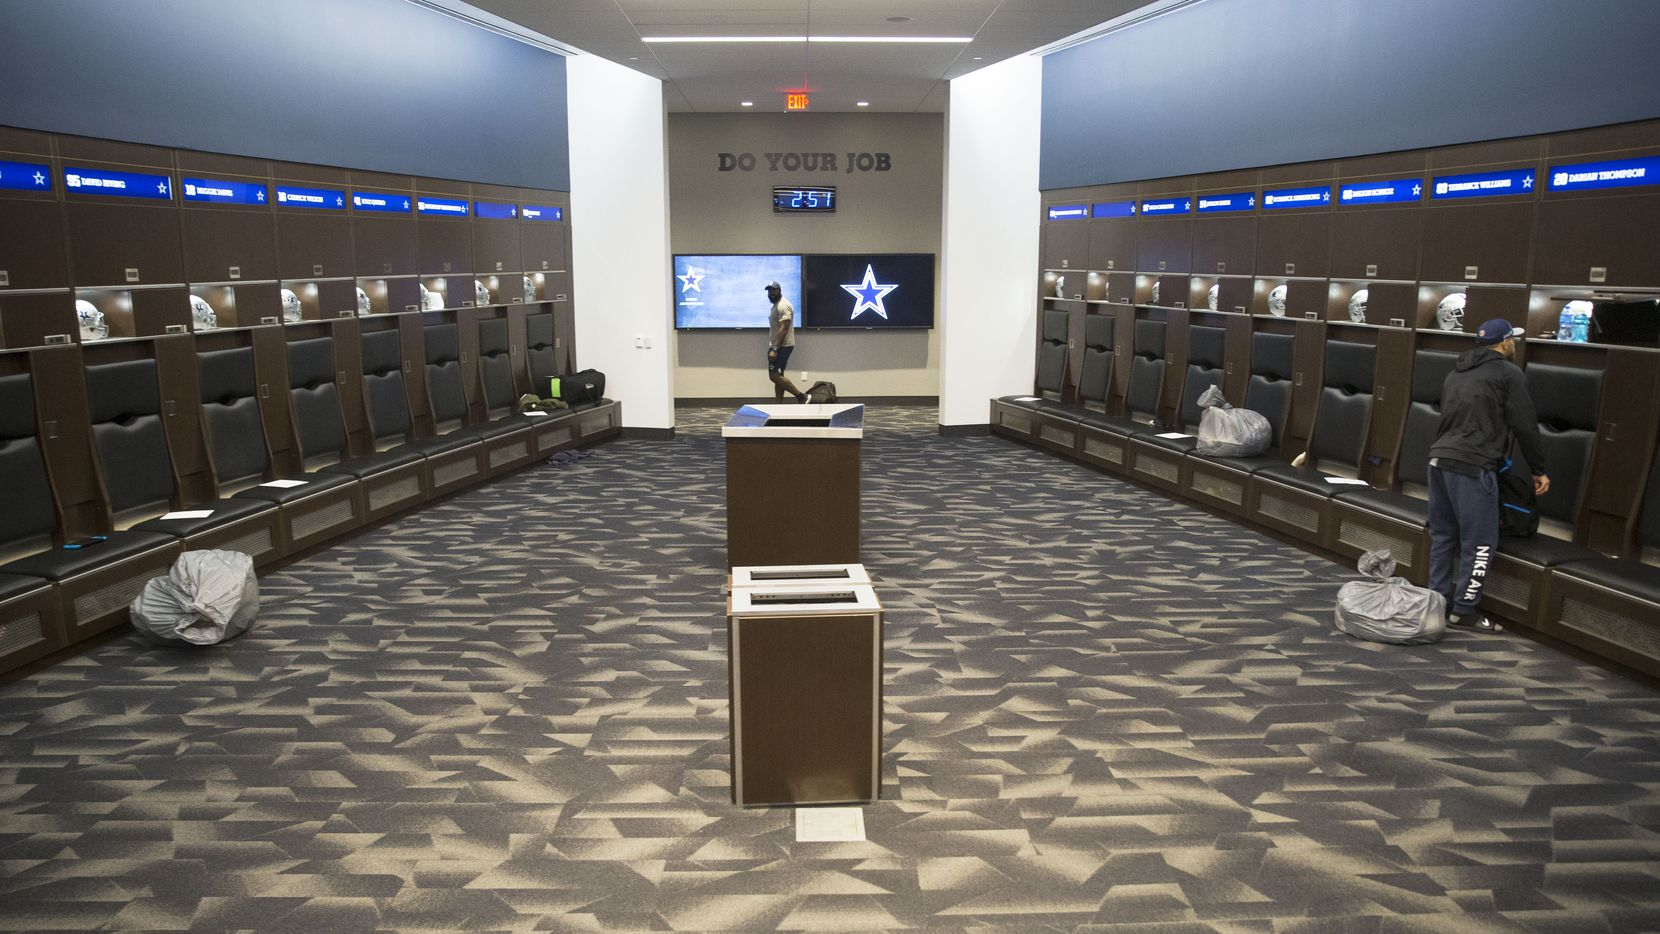 Dallas Cowboys safety Darian Thompson, right, at his locker at Ford Center at the Star in Frisco, Texas on Sunday, January 13, 2019. The Cowboys lost to the Los Angeles Rams on January 12, ending their season.